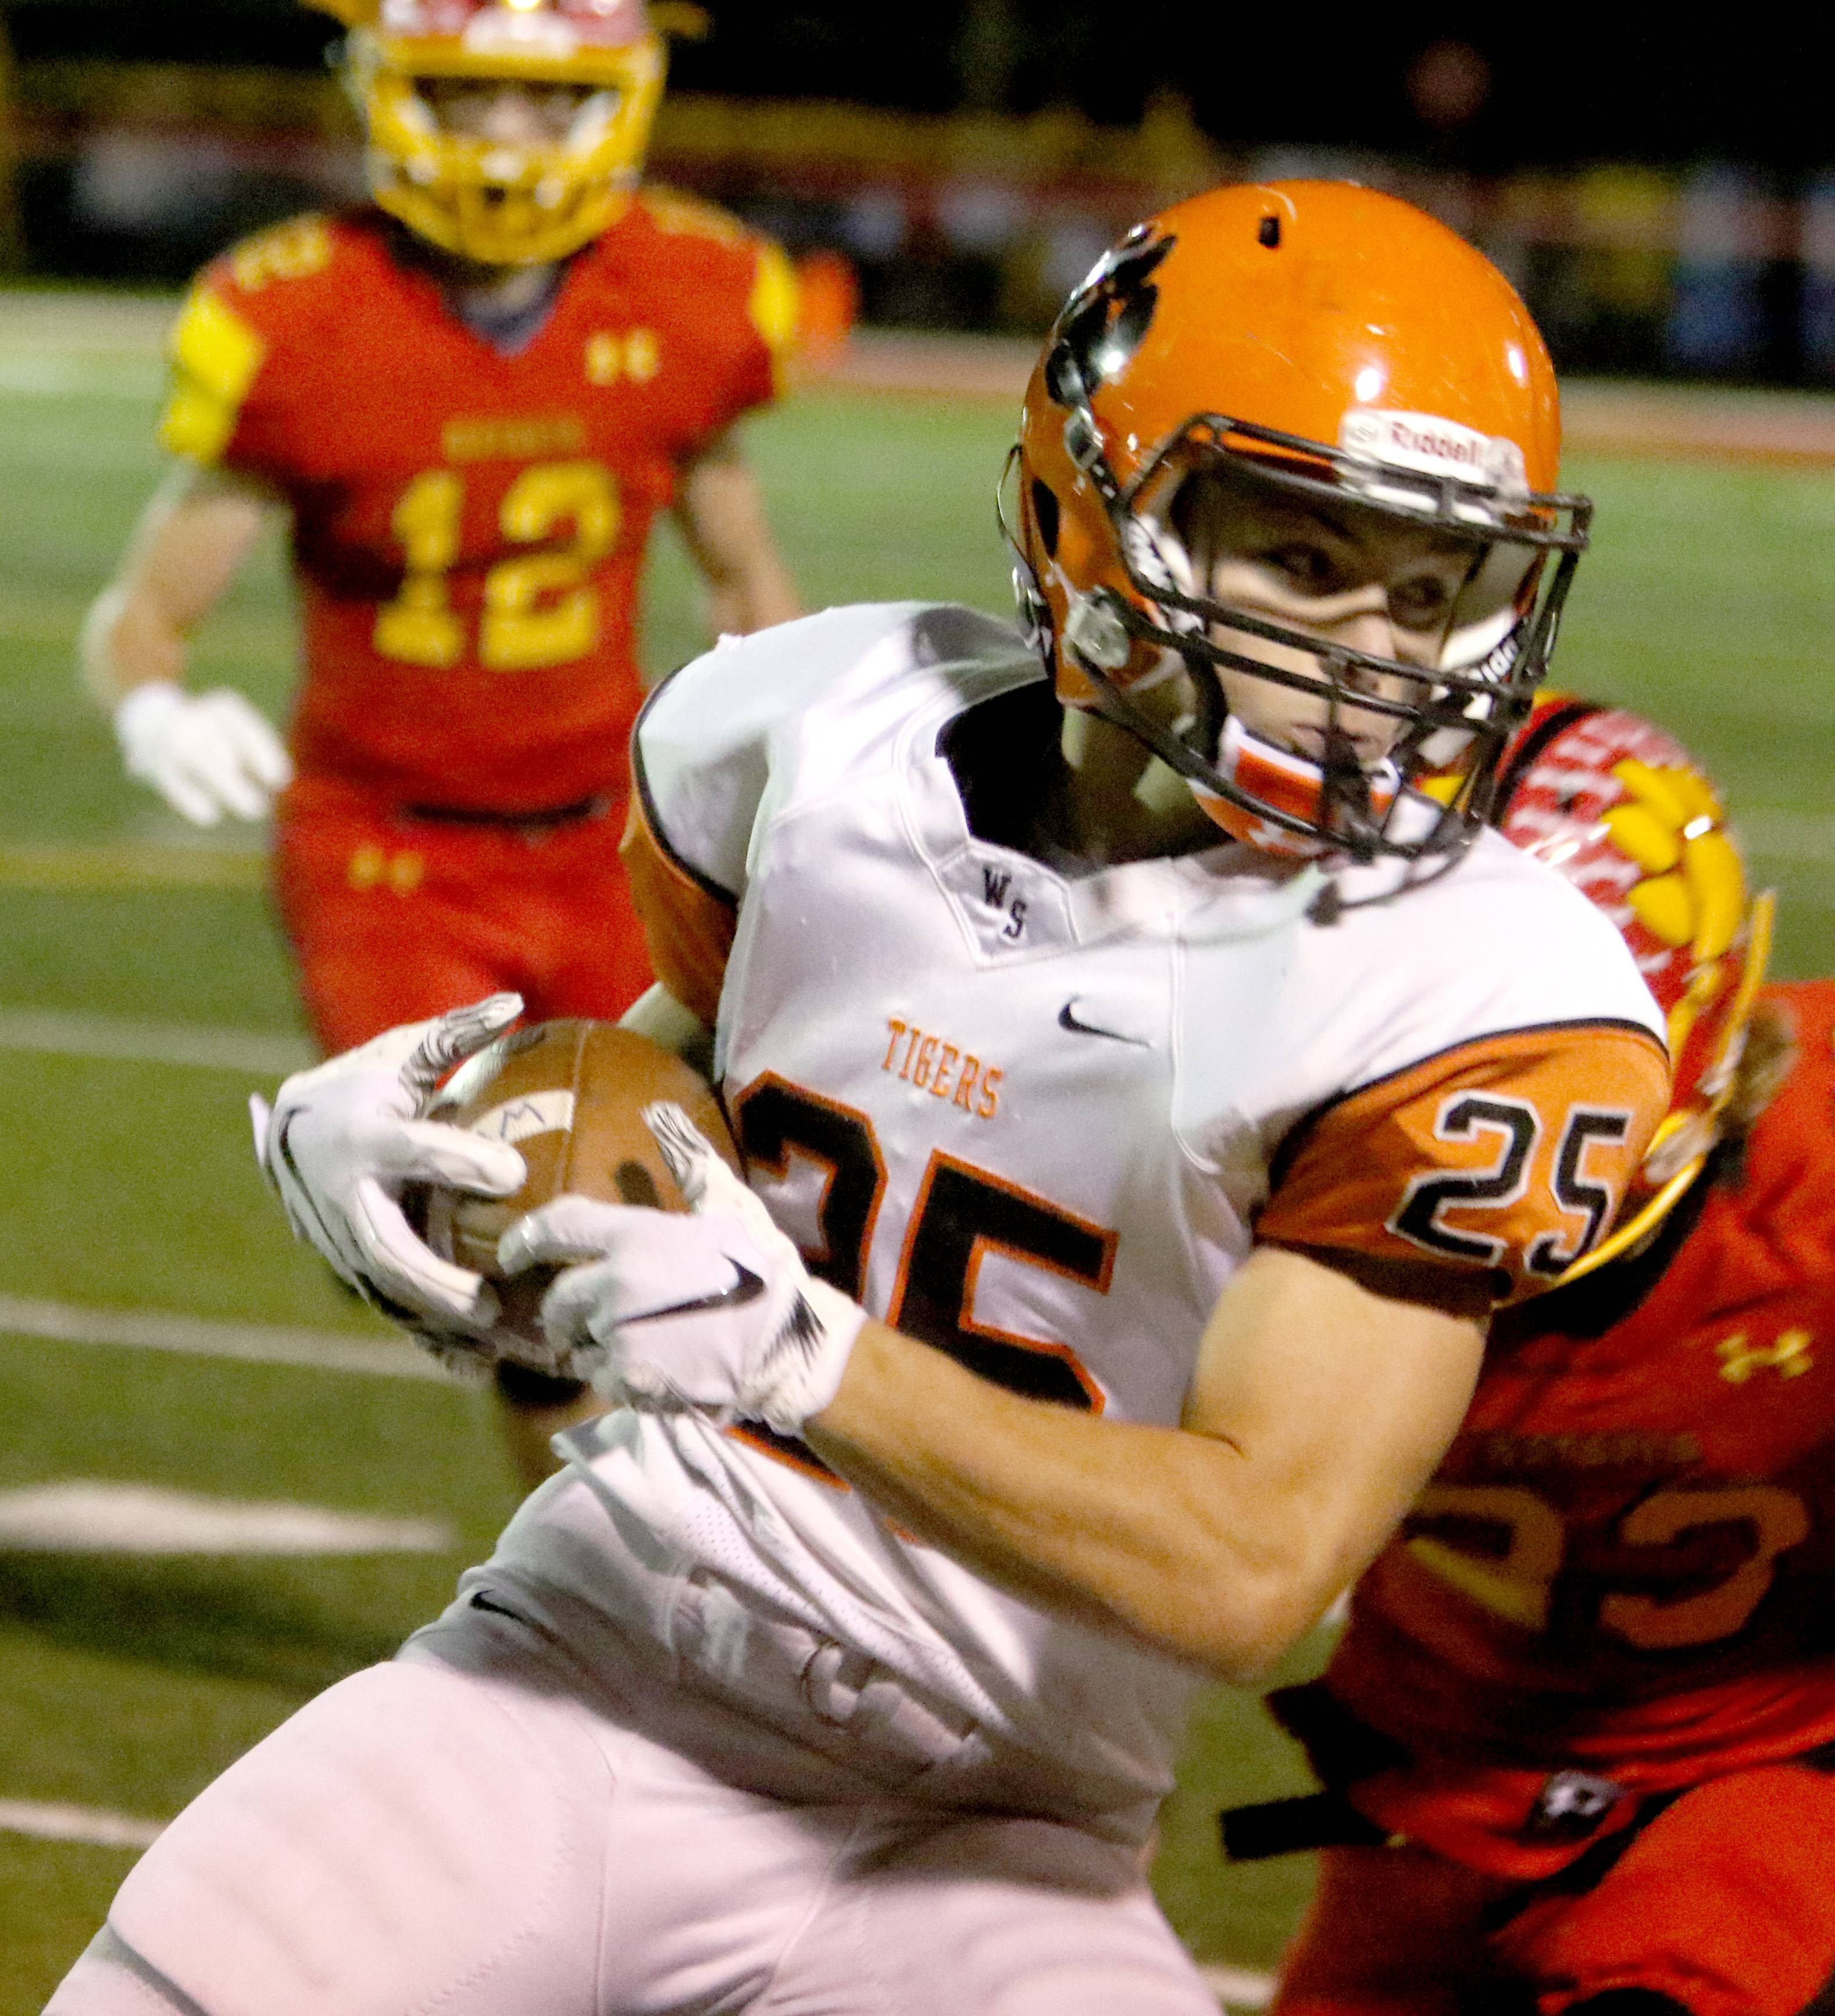 Wheaton Warrenville South's Jake Arthurs looks for running room during varsity football at Bulldog Stadium in Batavia Friday night.